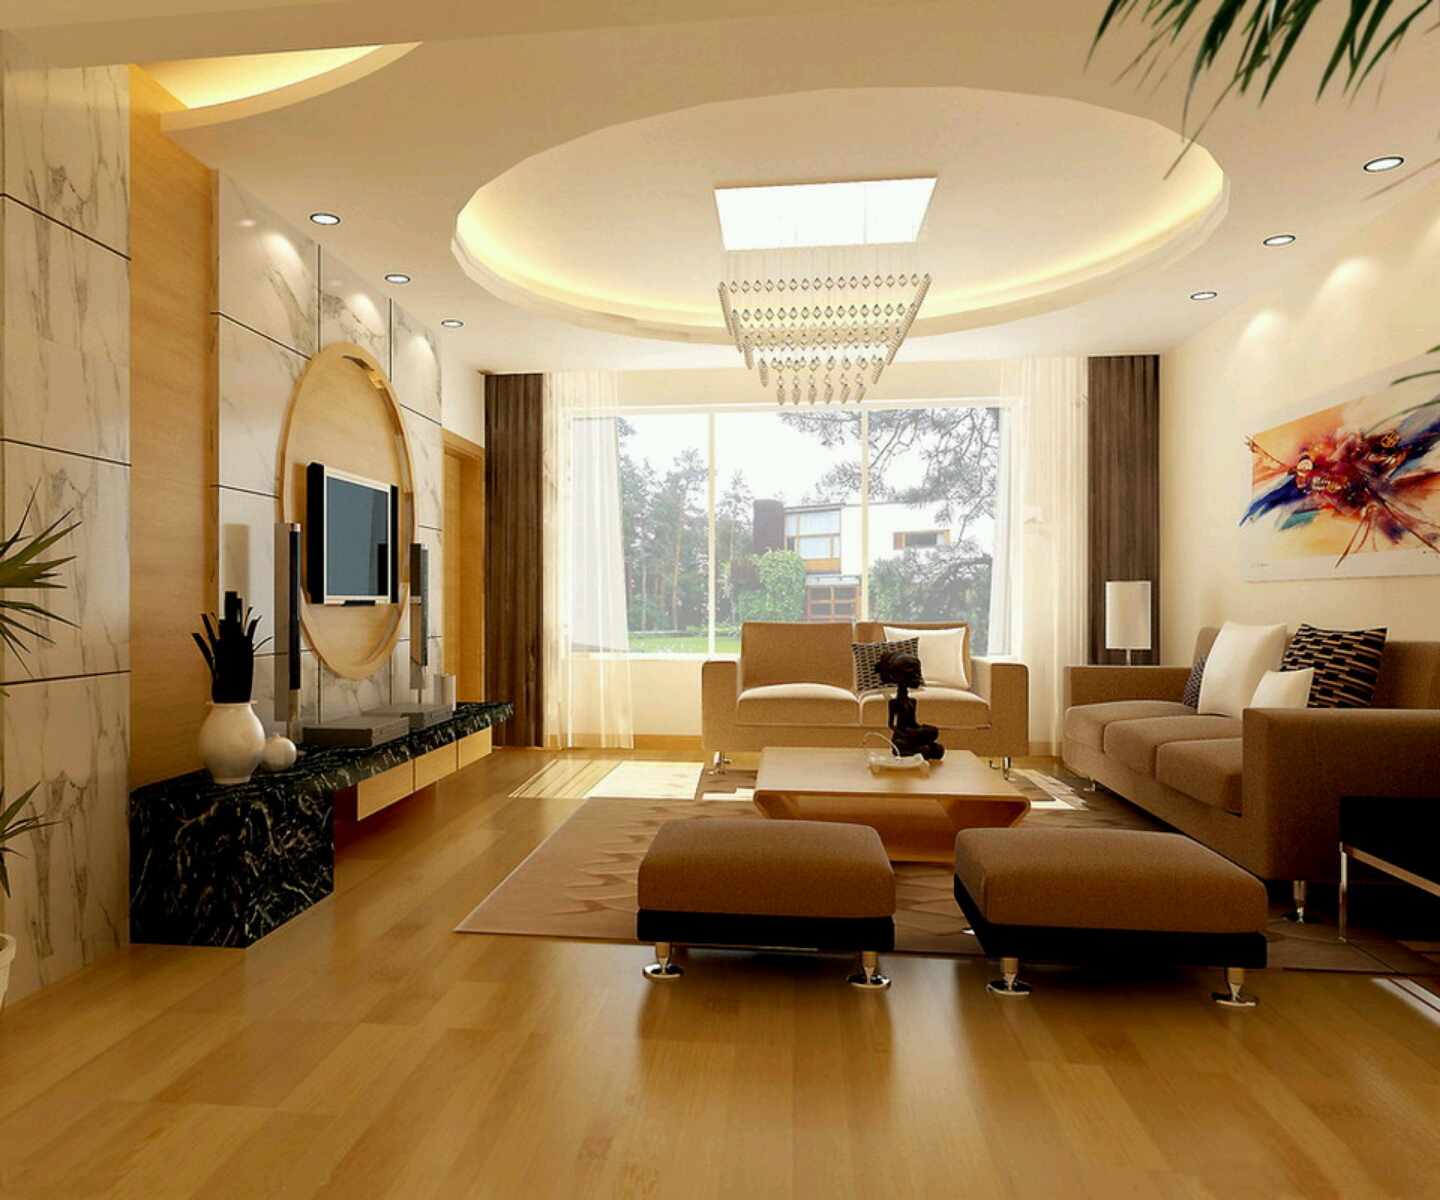 new home designs latest modern interior decoration On modern sitting room designs